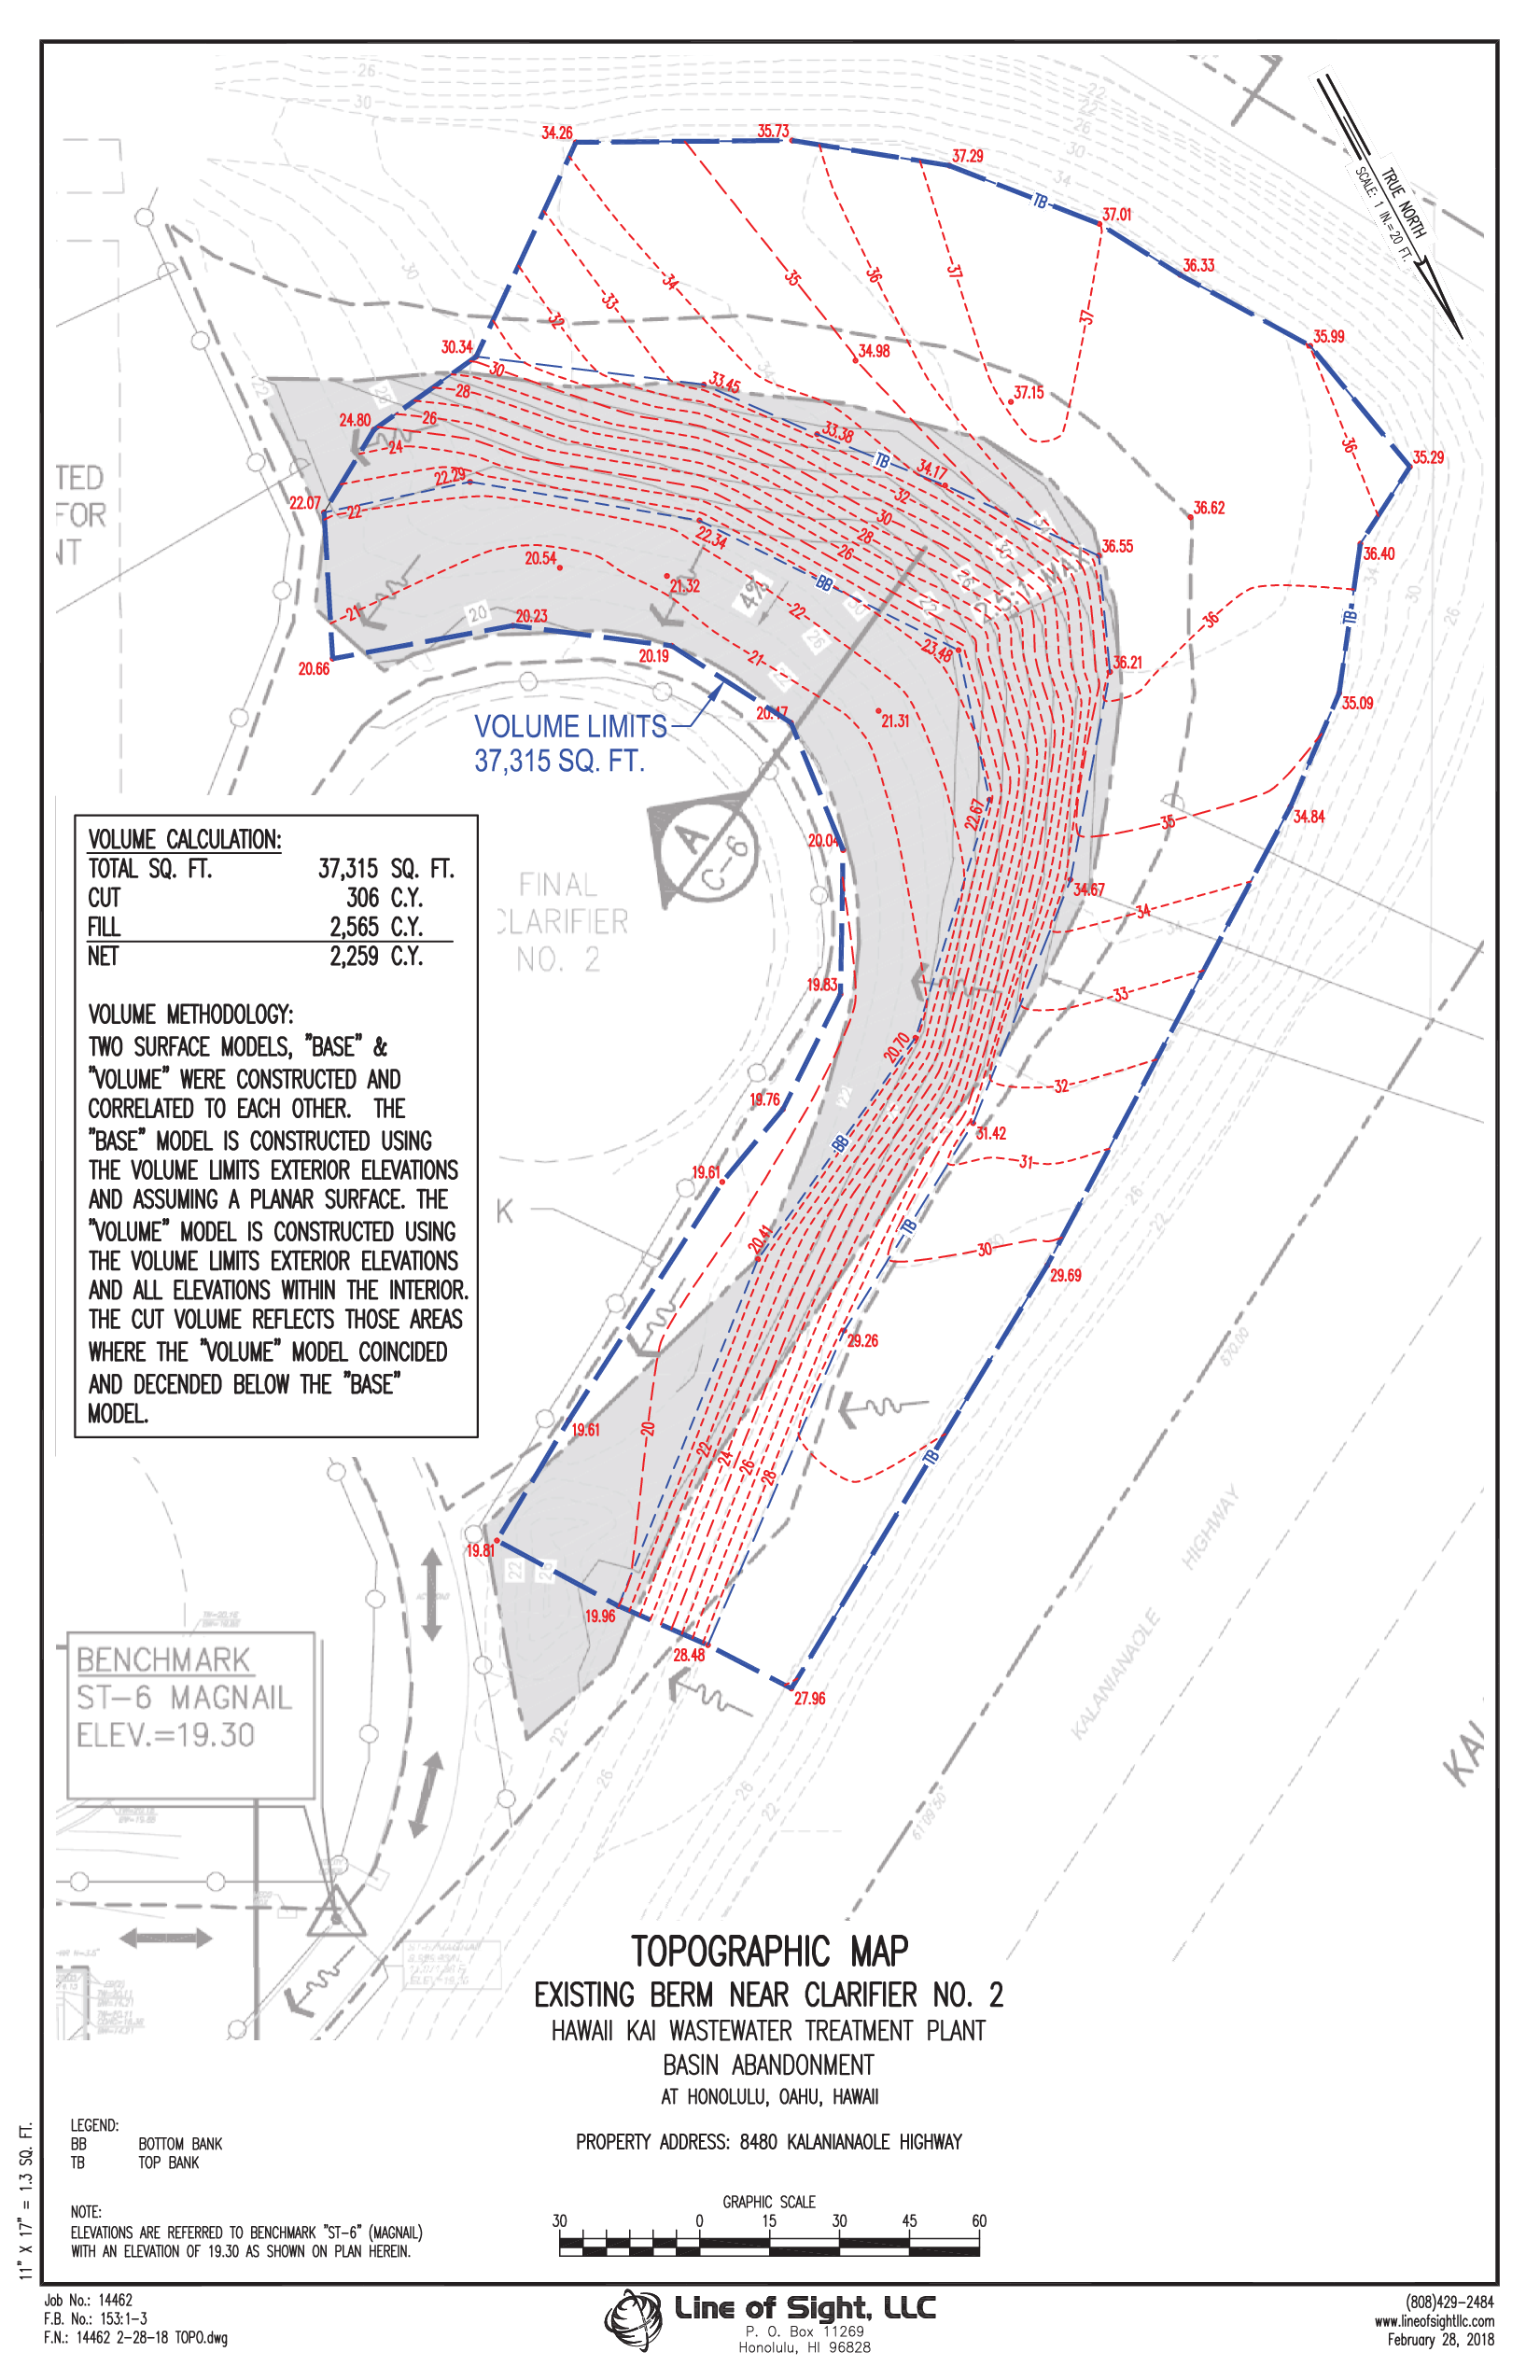 Stockpile Volume Topographc Map